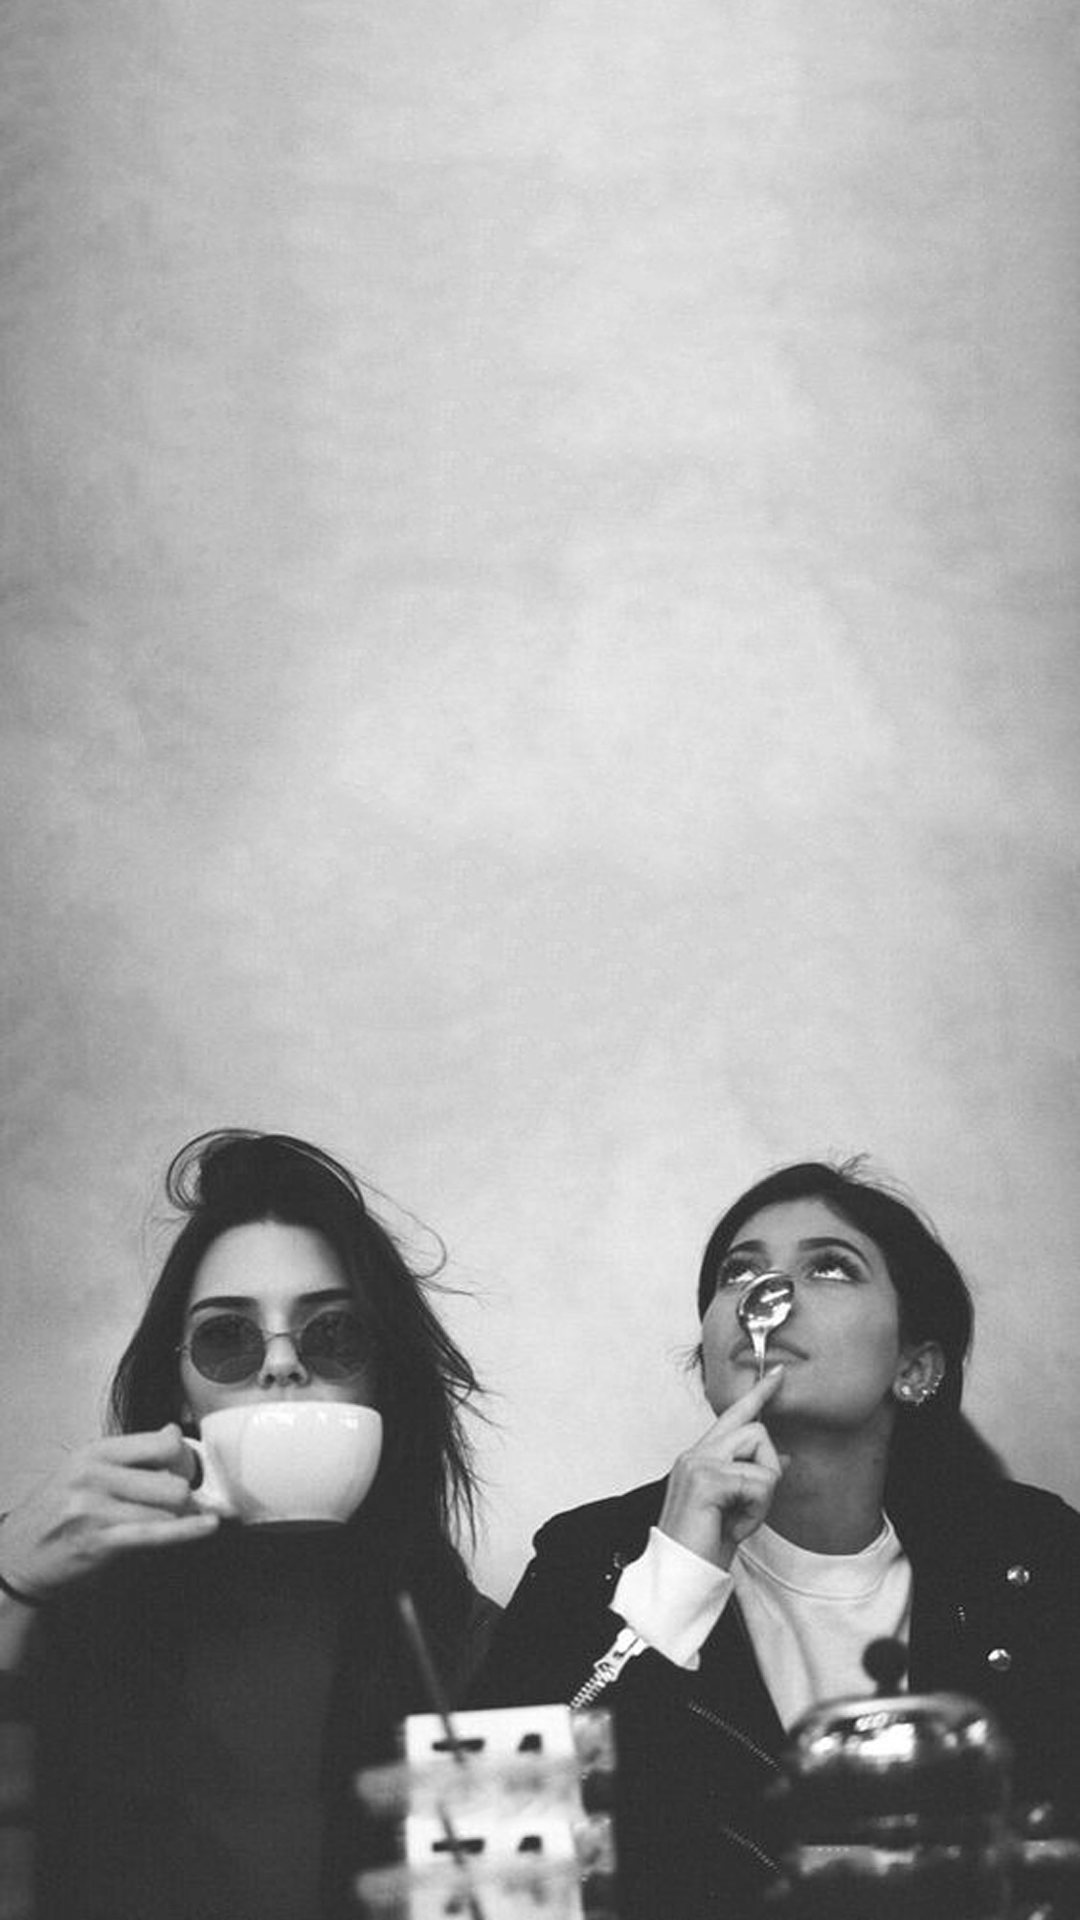 Kendall & Kylie Jenner iPhone 6/6s/7 black and white wallpaper lockscreen. | Blog things ...